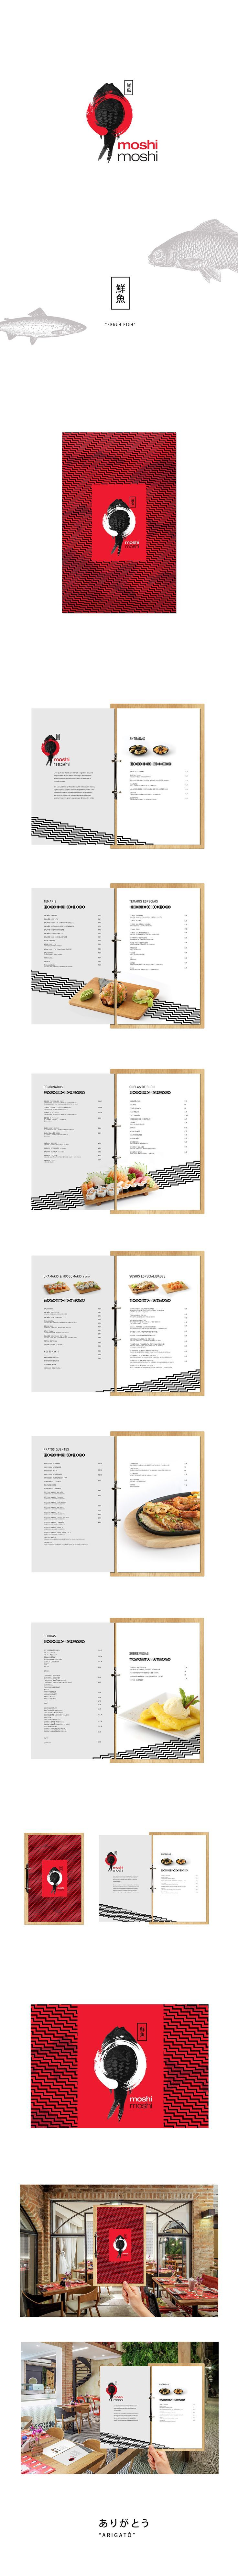 Moshi Moshi Japanese Restaurant Menu on Behance: